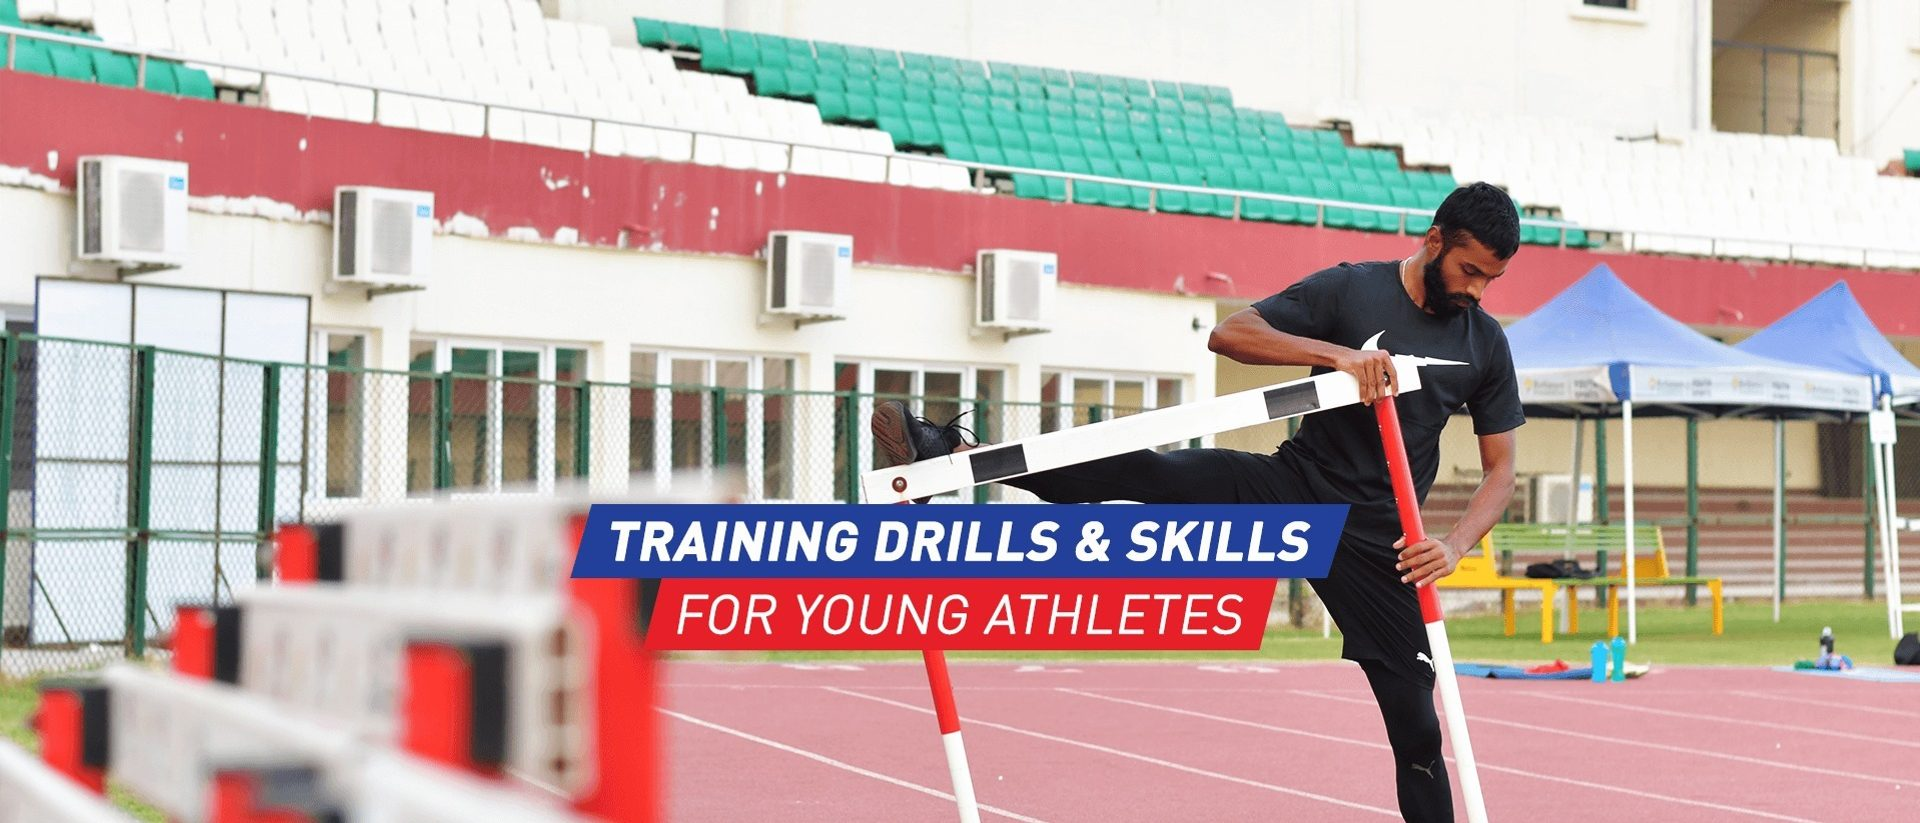 Training Drills & Skills for Young Athletes